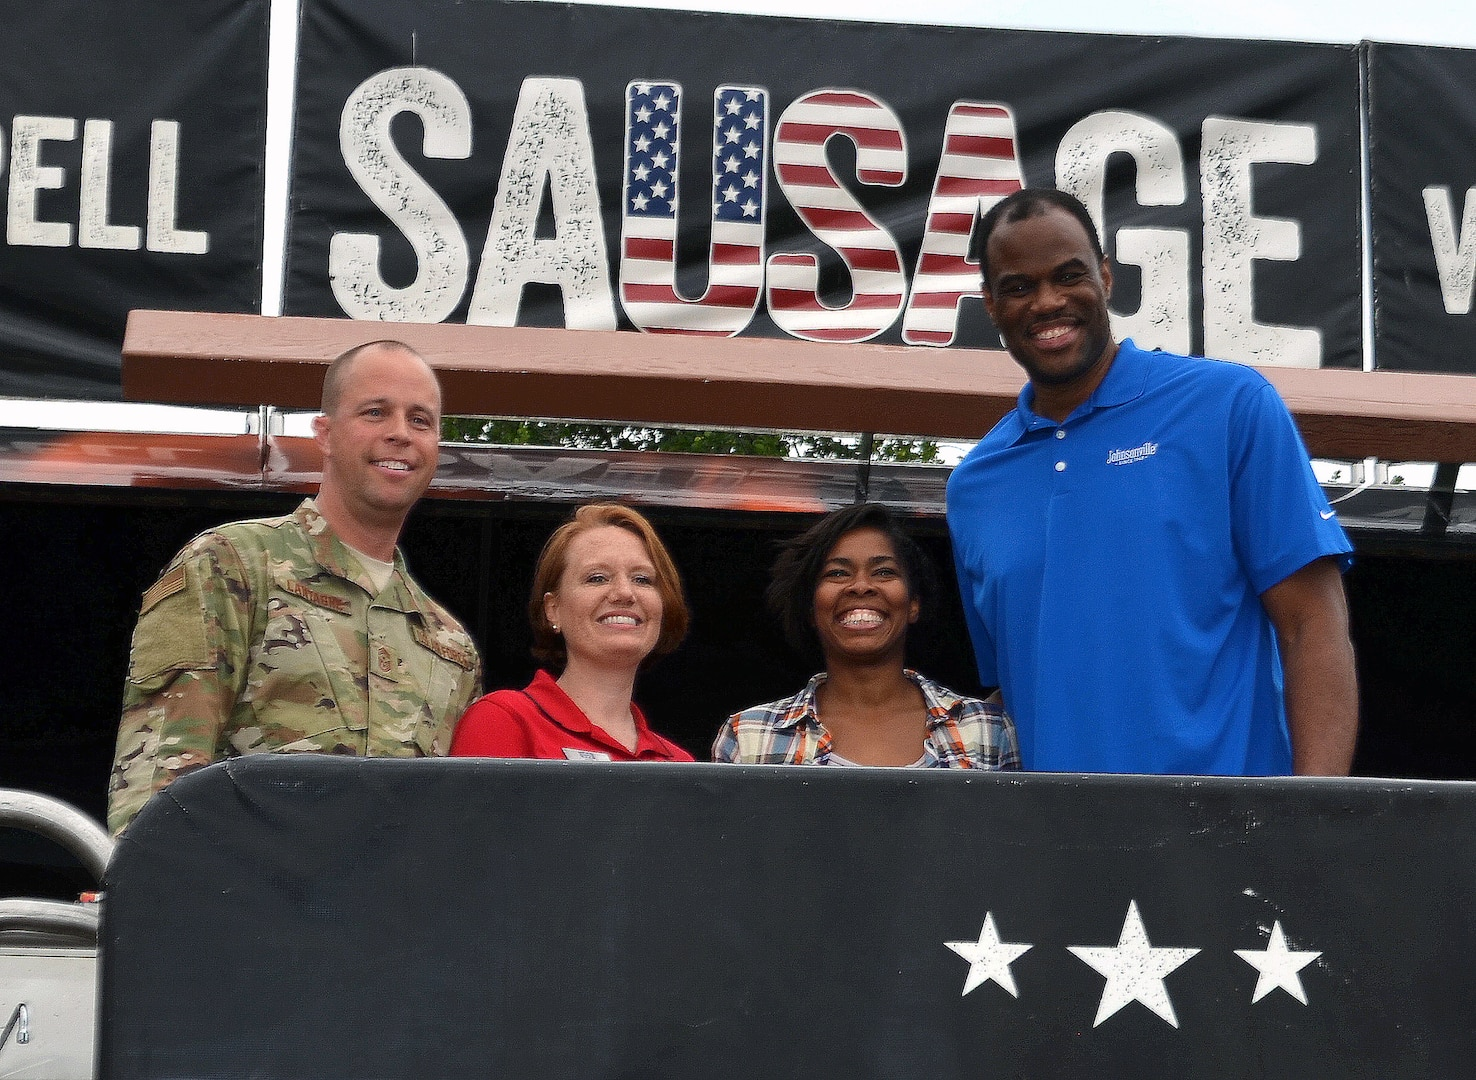 Former San Antonio Spurs legend David Robinson spoke to military spouses and children, signed autographs and shot some hoops during the Military Spouse Appreciation Day event at Joint Base San Antonio-Fort Sam Houston May 9. After his remarks, fans swarmed Robinson as he signed autographs, basketballs and Spurs memorabilia. He posed for photos and got to play basketball with some of the fans. Robinson was able to enjoy the food, including the sausage grilled at the event before heading out.